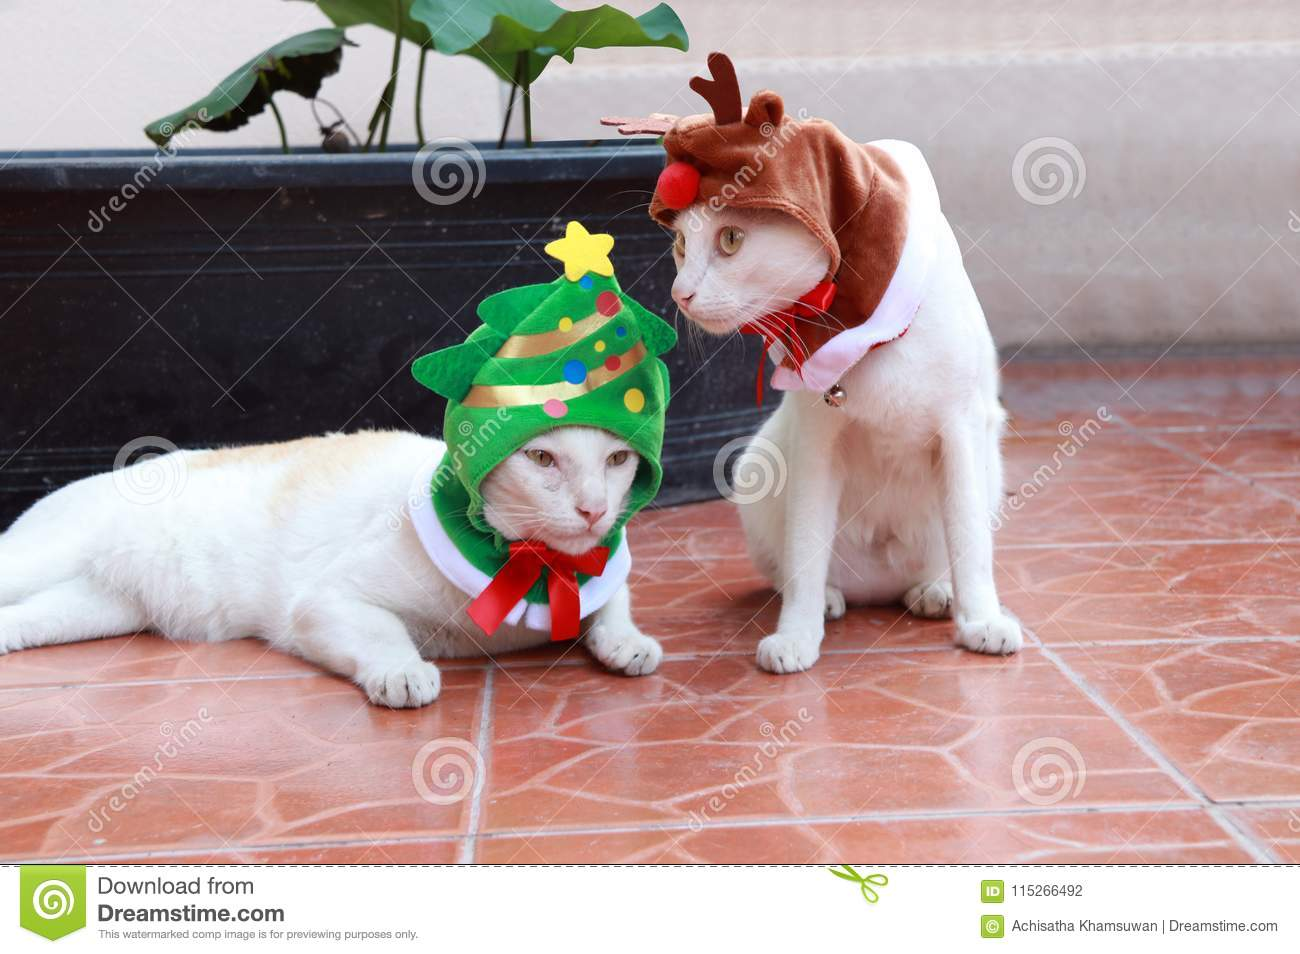 White cat put the green Christmas tree hood and another white cat put the reindeer hood sitting and laying down on the brown floor